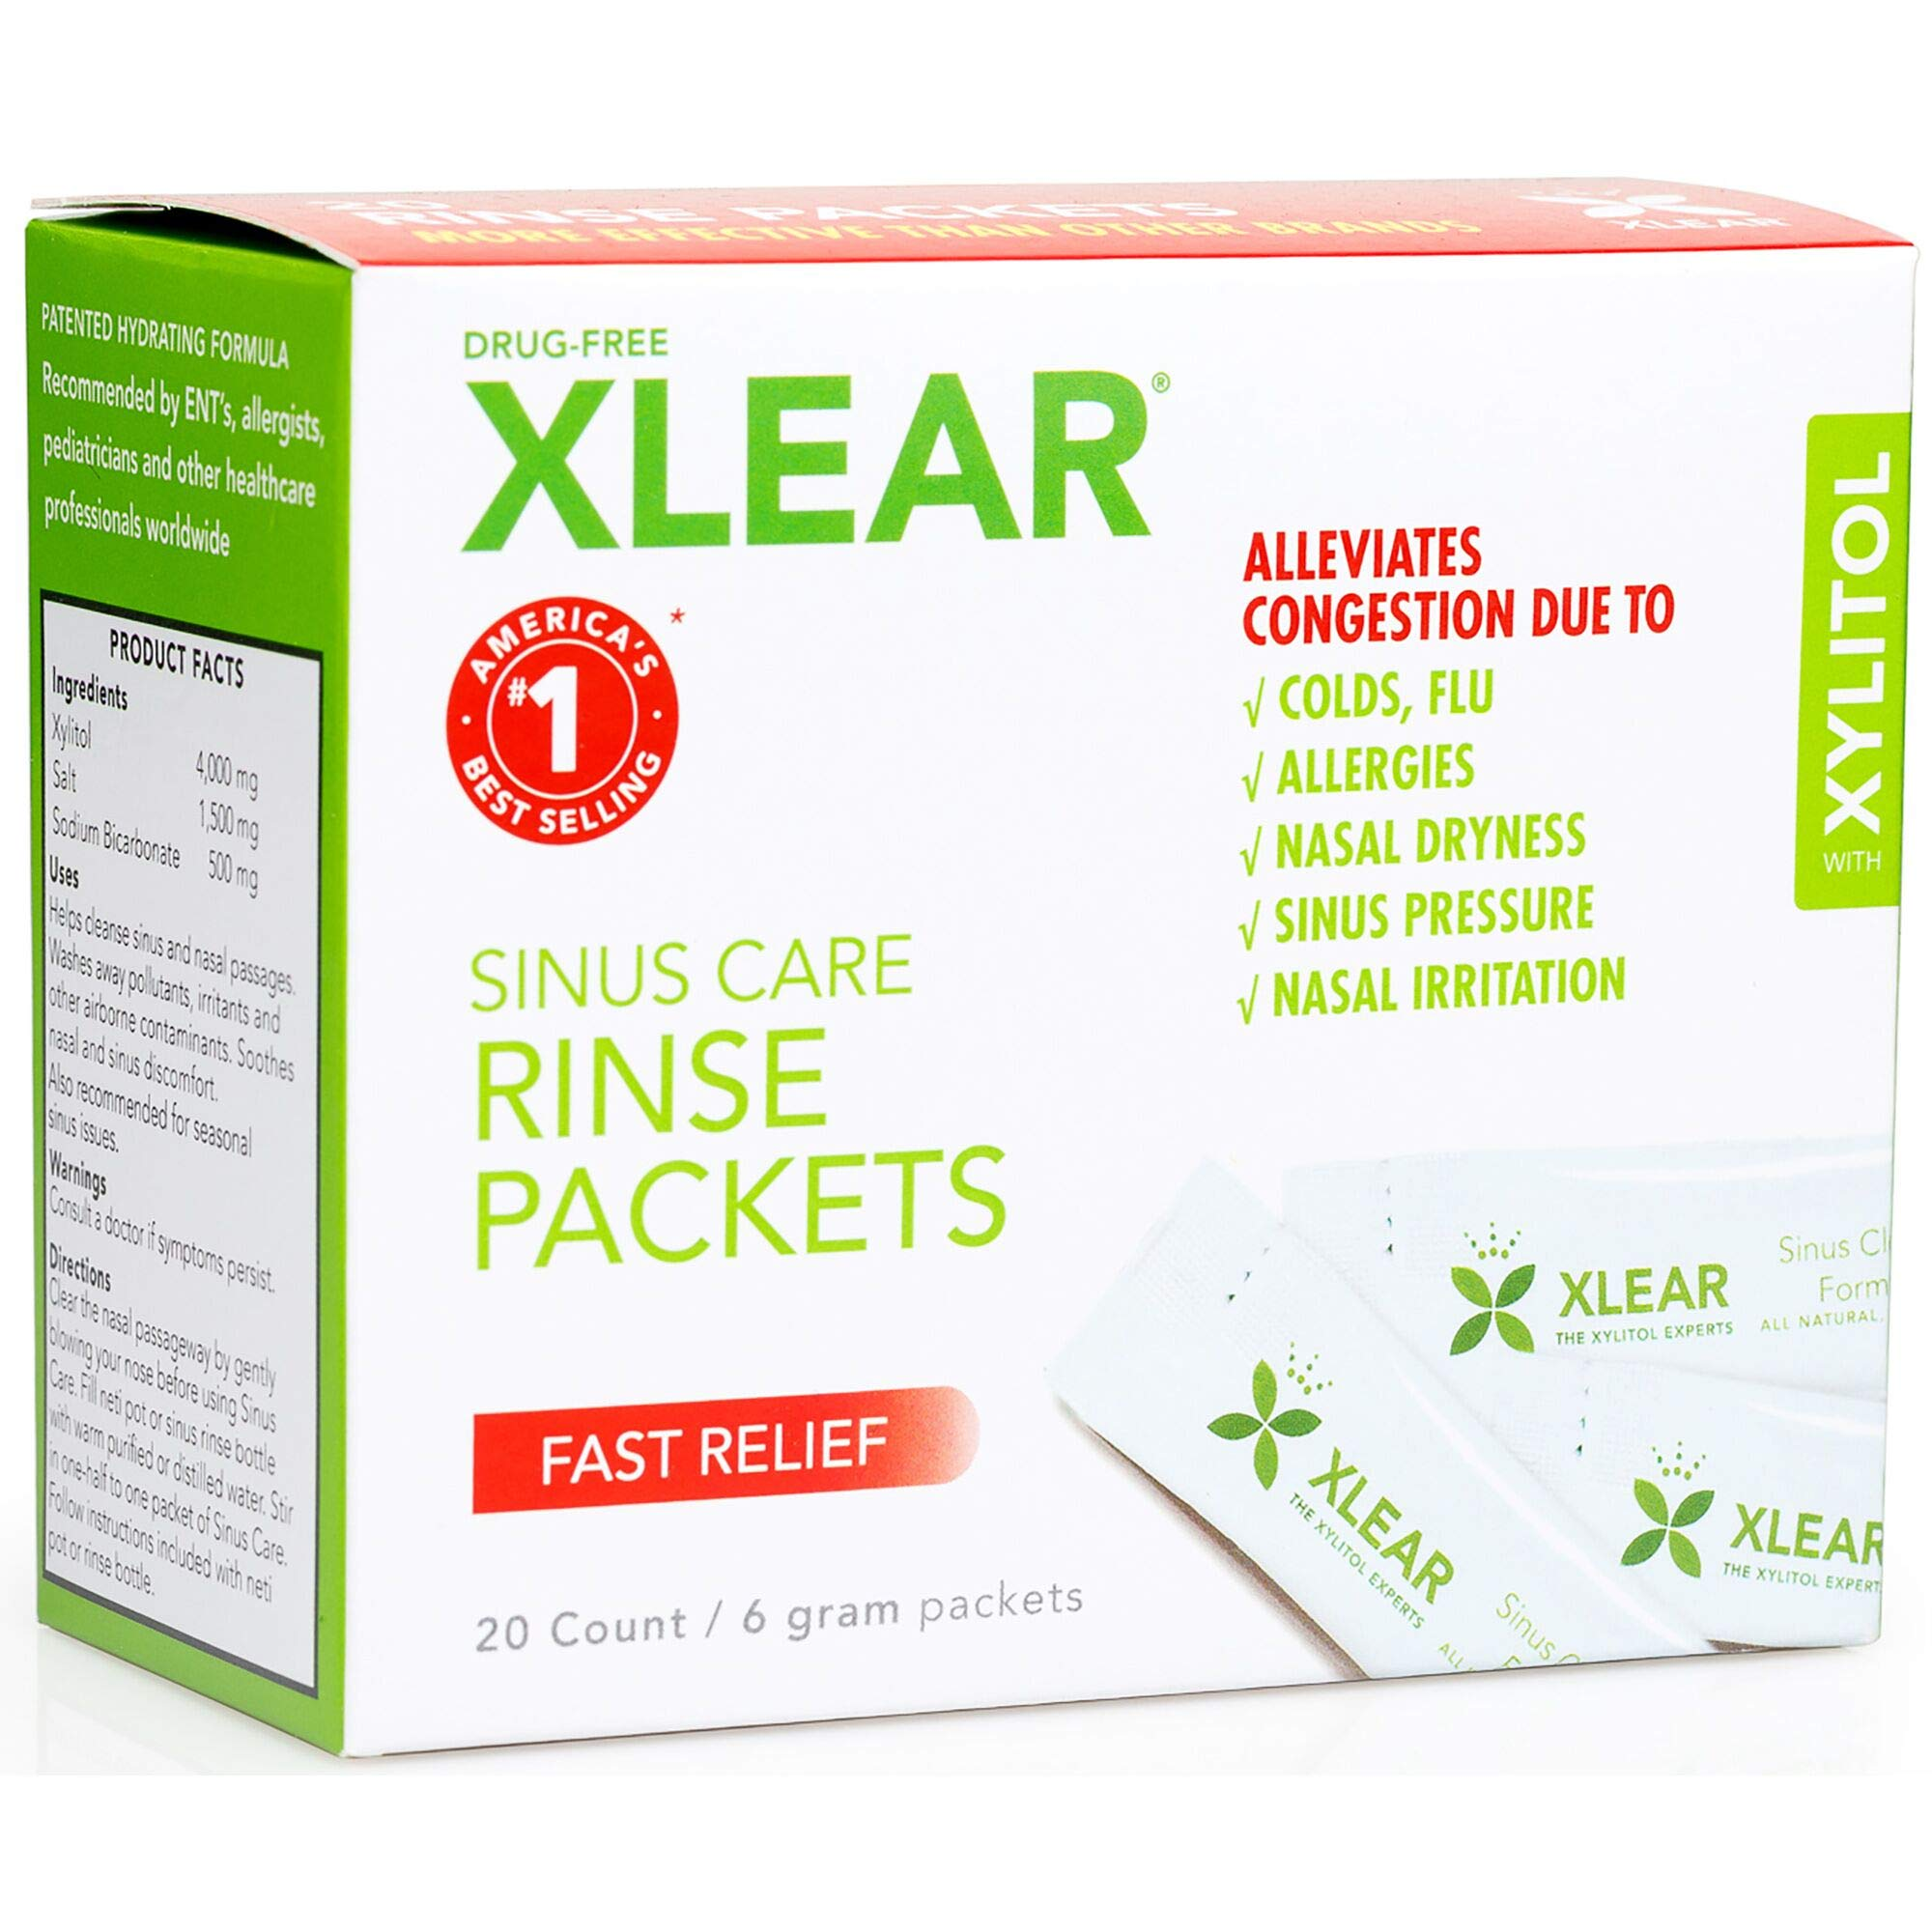 Xlear Natural Neti Pot Sinus Rinse Refill Packets, 20 Packets (2 Pack) by Xlear